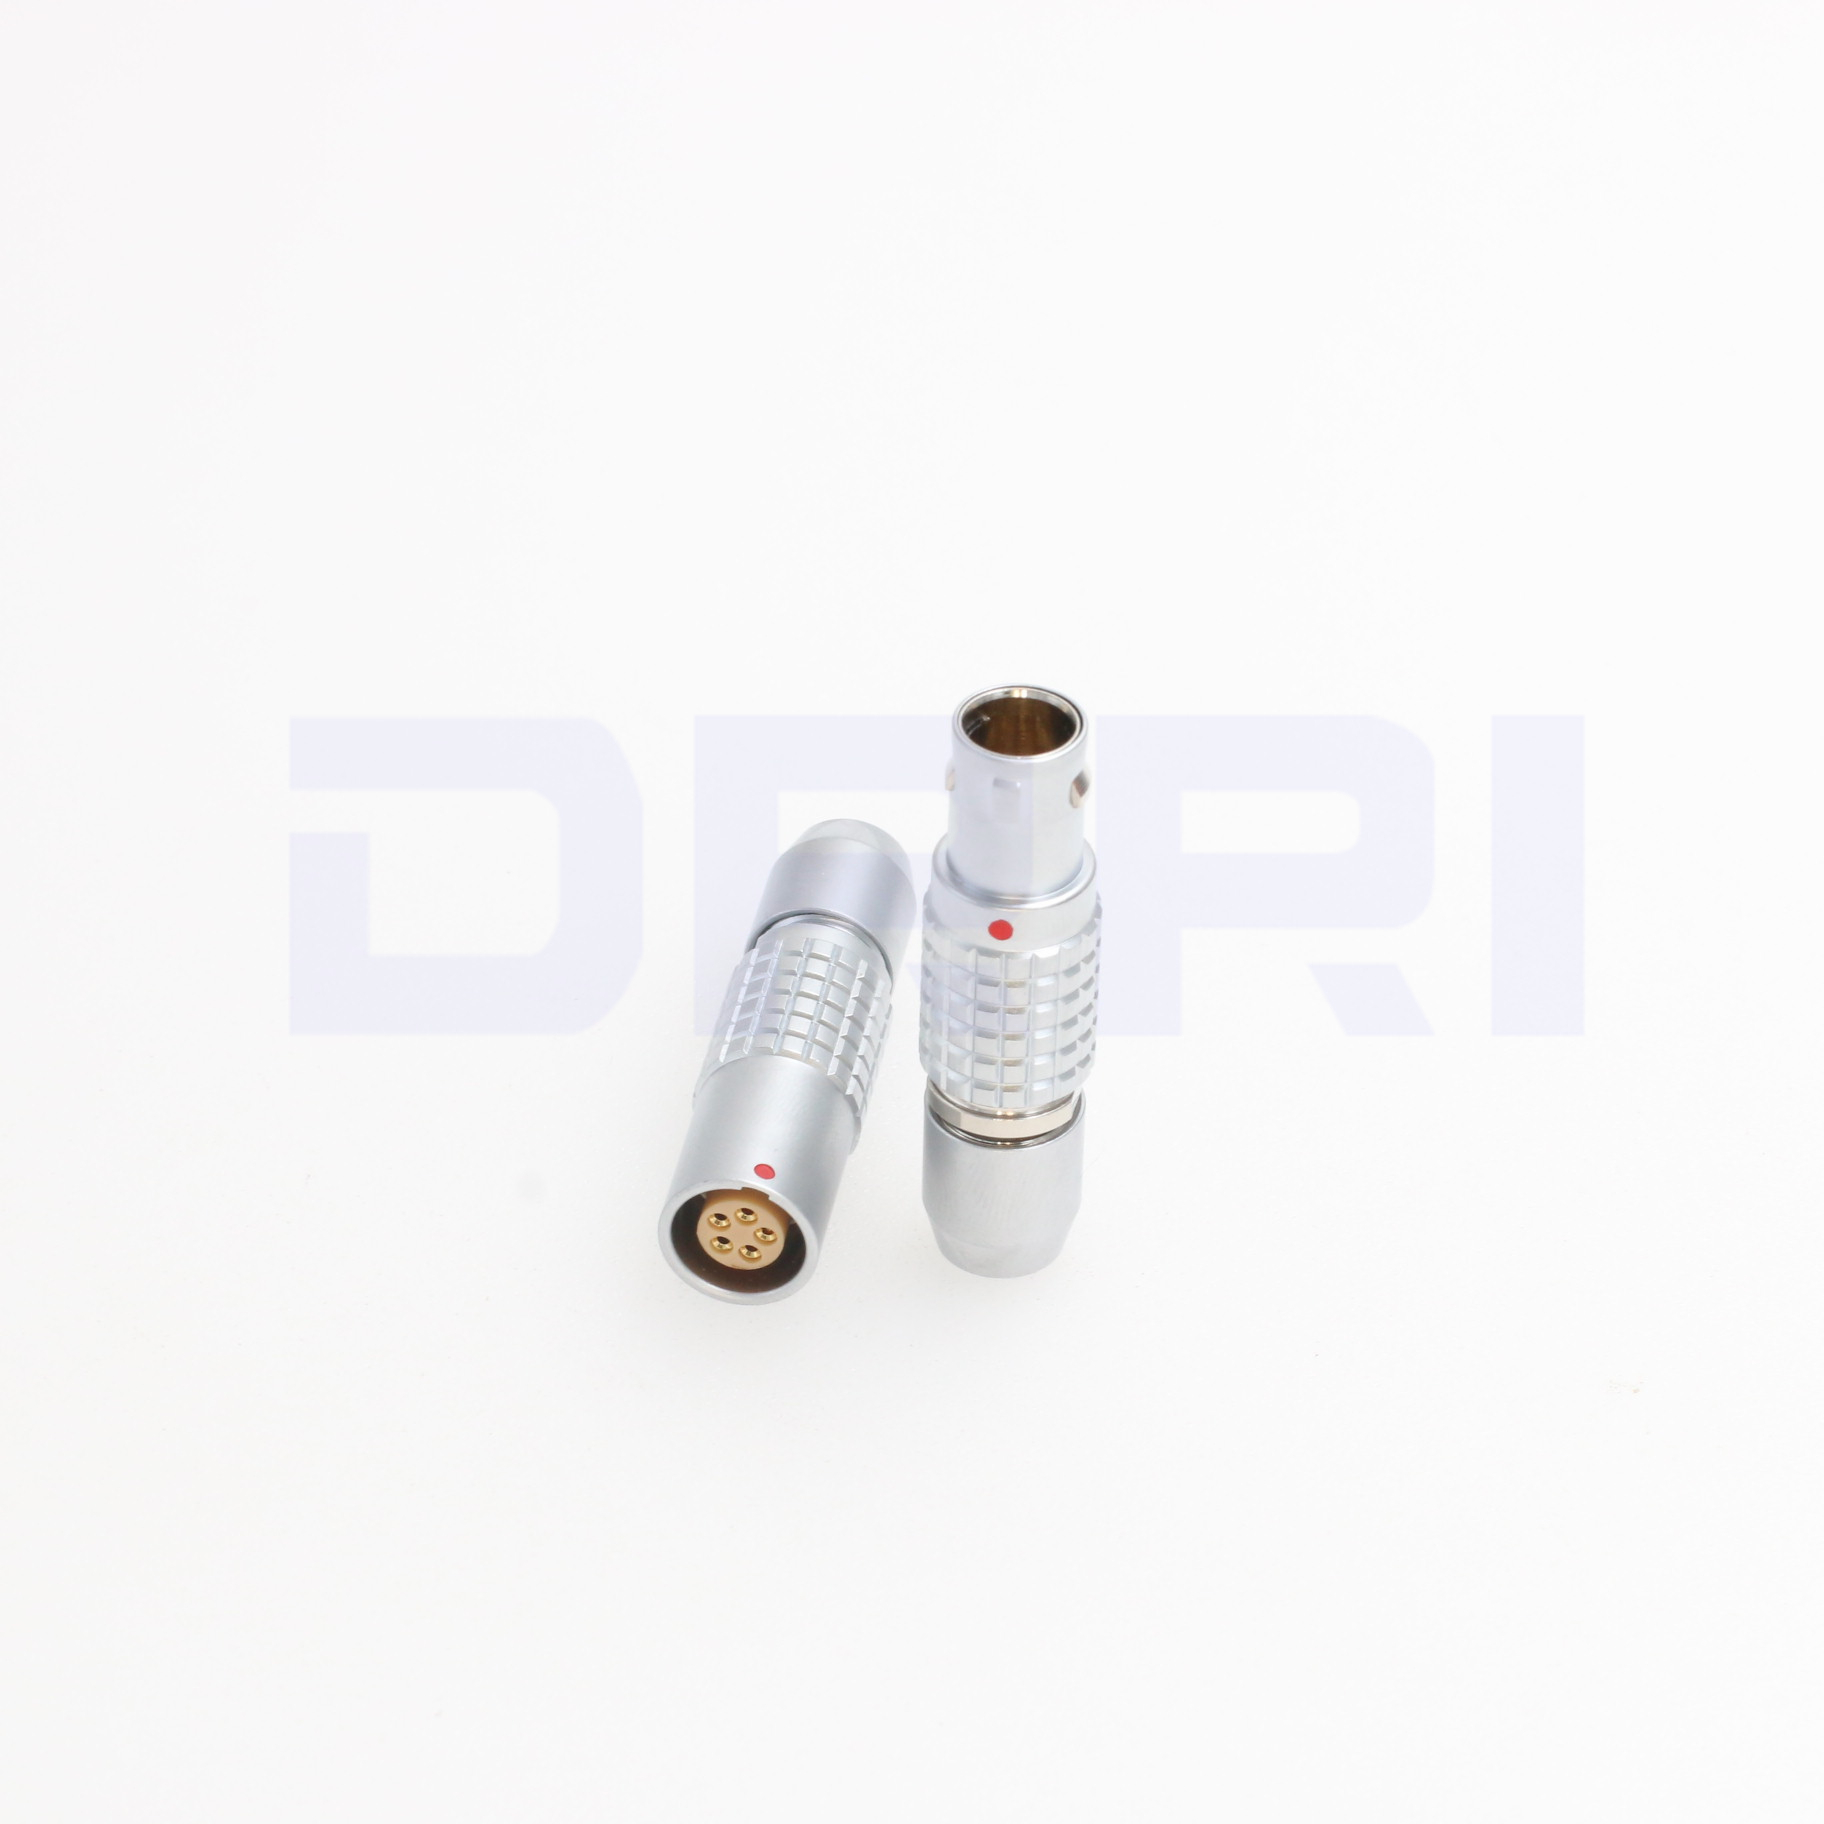 Image 2 - 0B PHG FGG 2 3 4 5 6 7 9 pin push pull metal connector without bend reliefConnectors   -